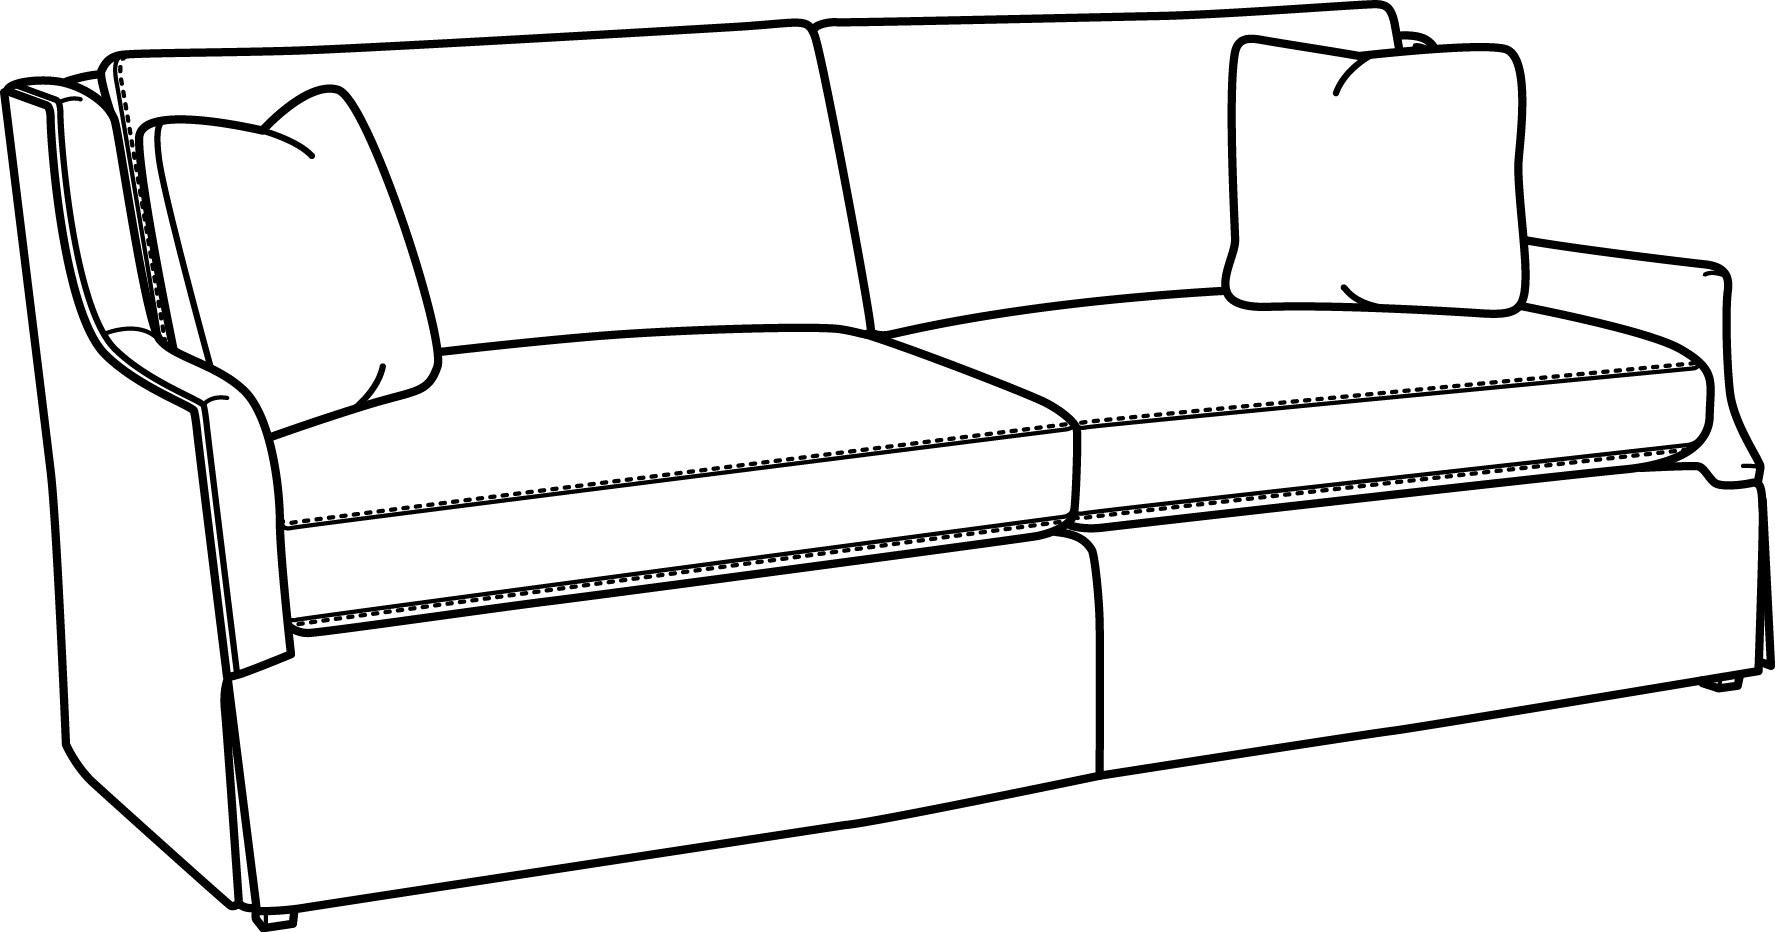 Sofa x free clip. Couch clipart line art